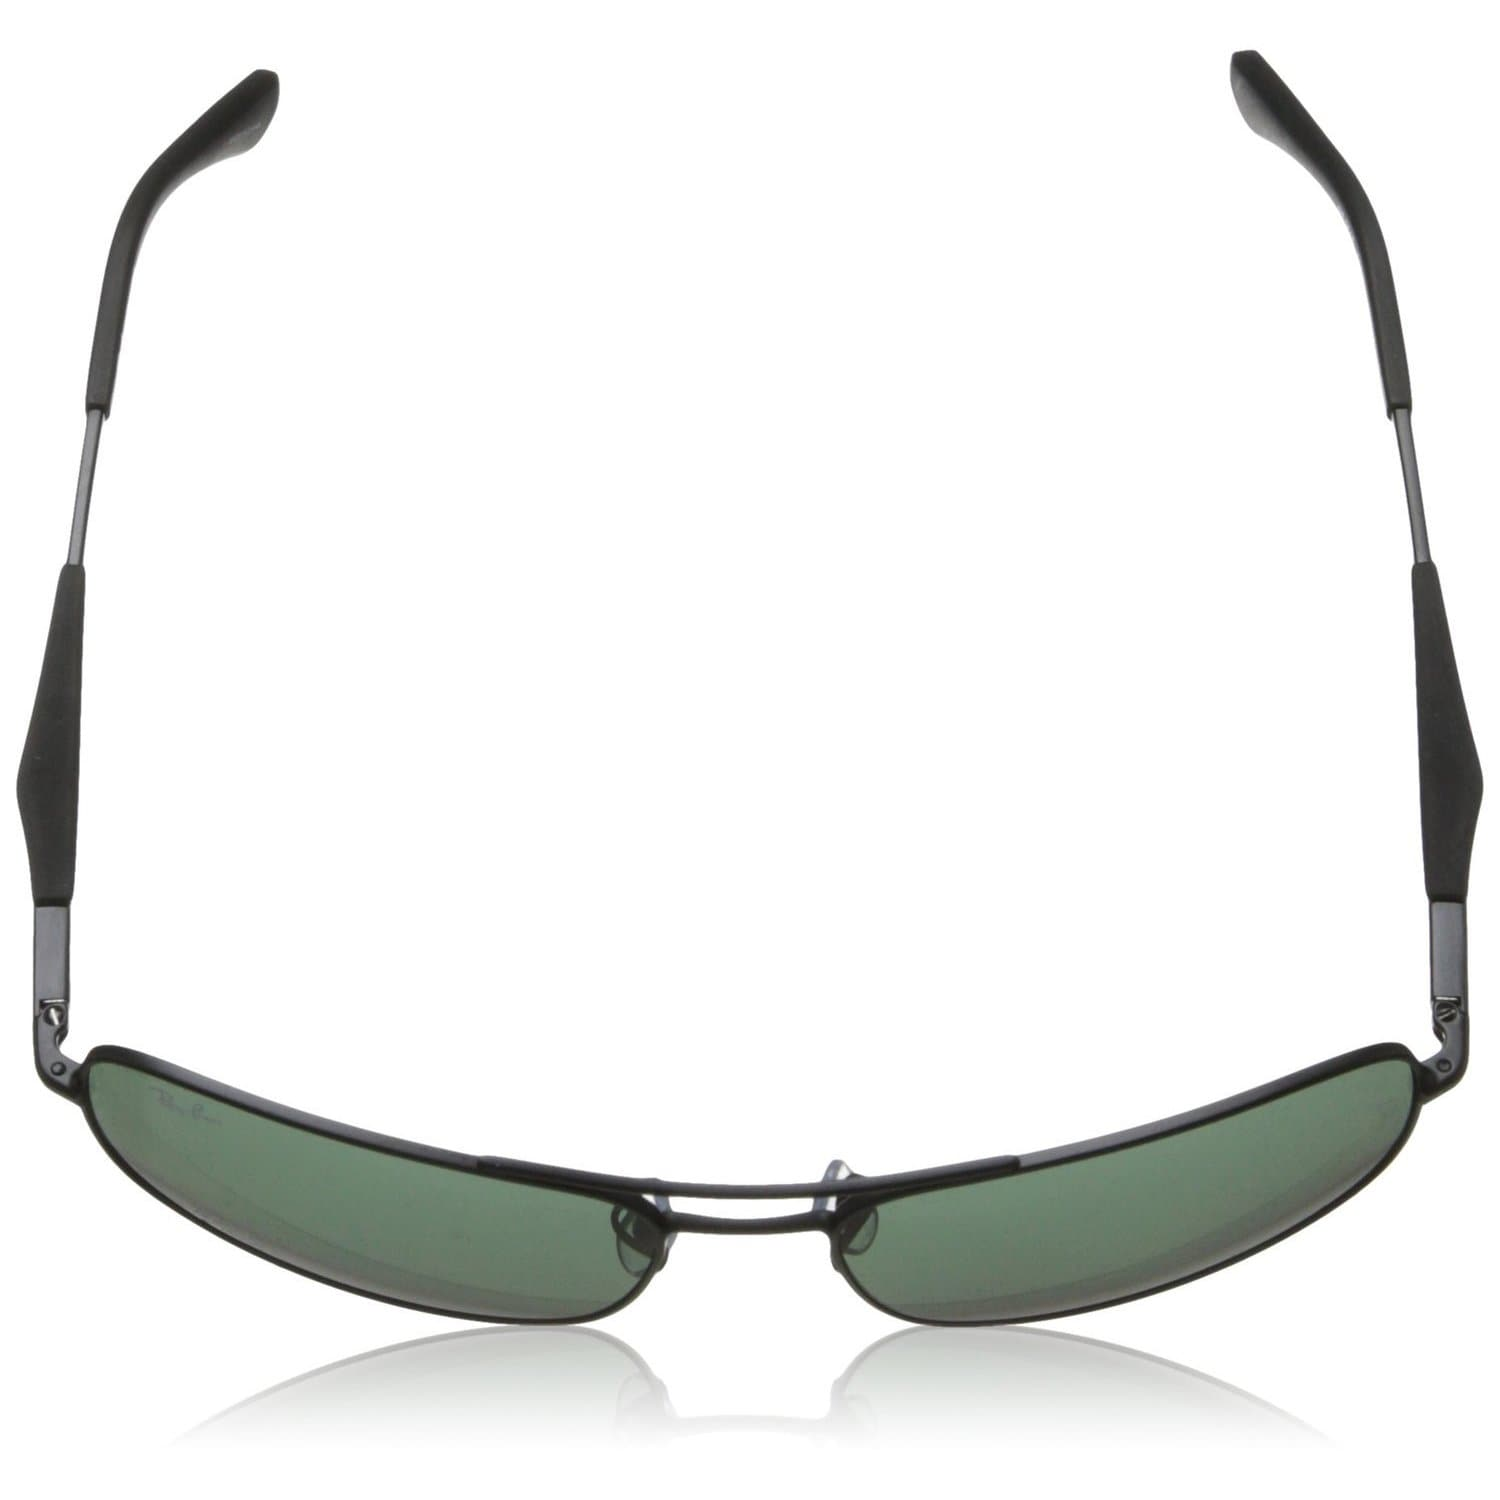 e0f4054fbb Shop Ray-Ban RB3515 004 71 Men s Gunmetal Frame Green Classic 58mm Lens  Sunglasses - Free Shipping Today - Overstock - 11118536